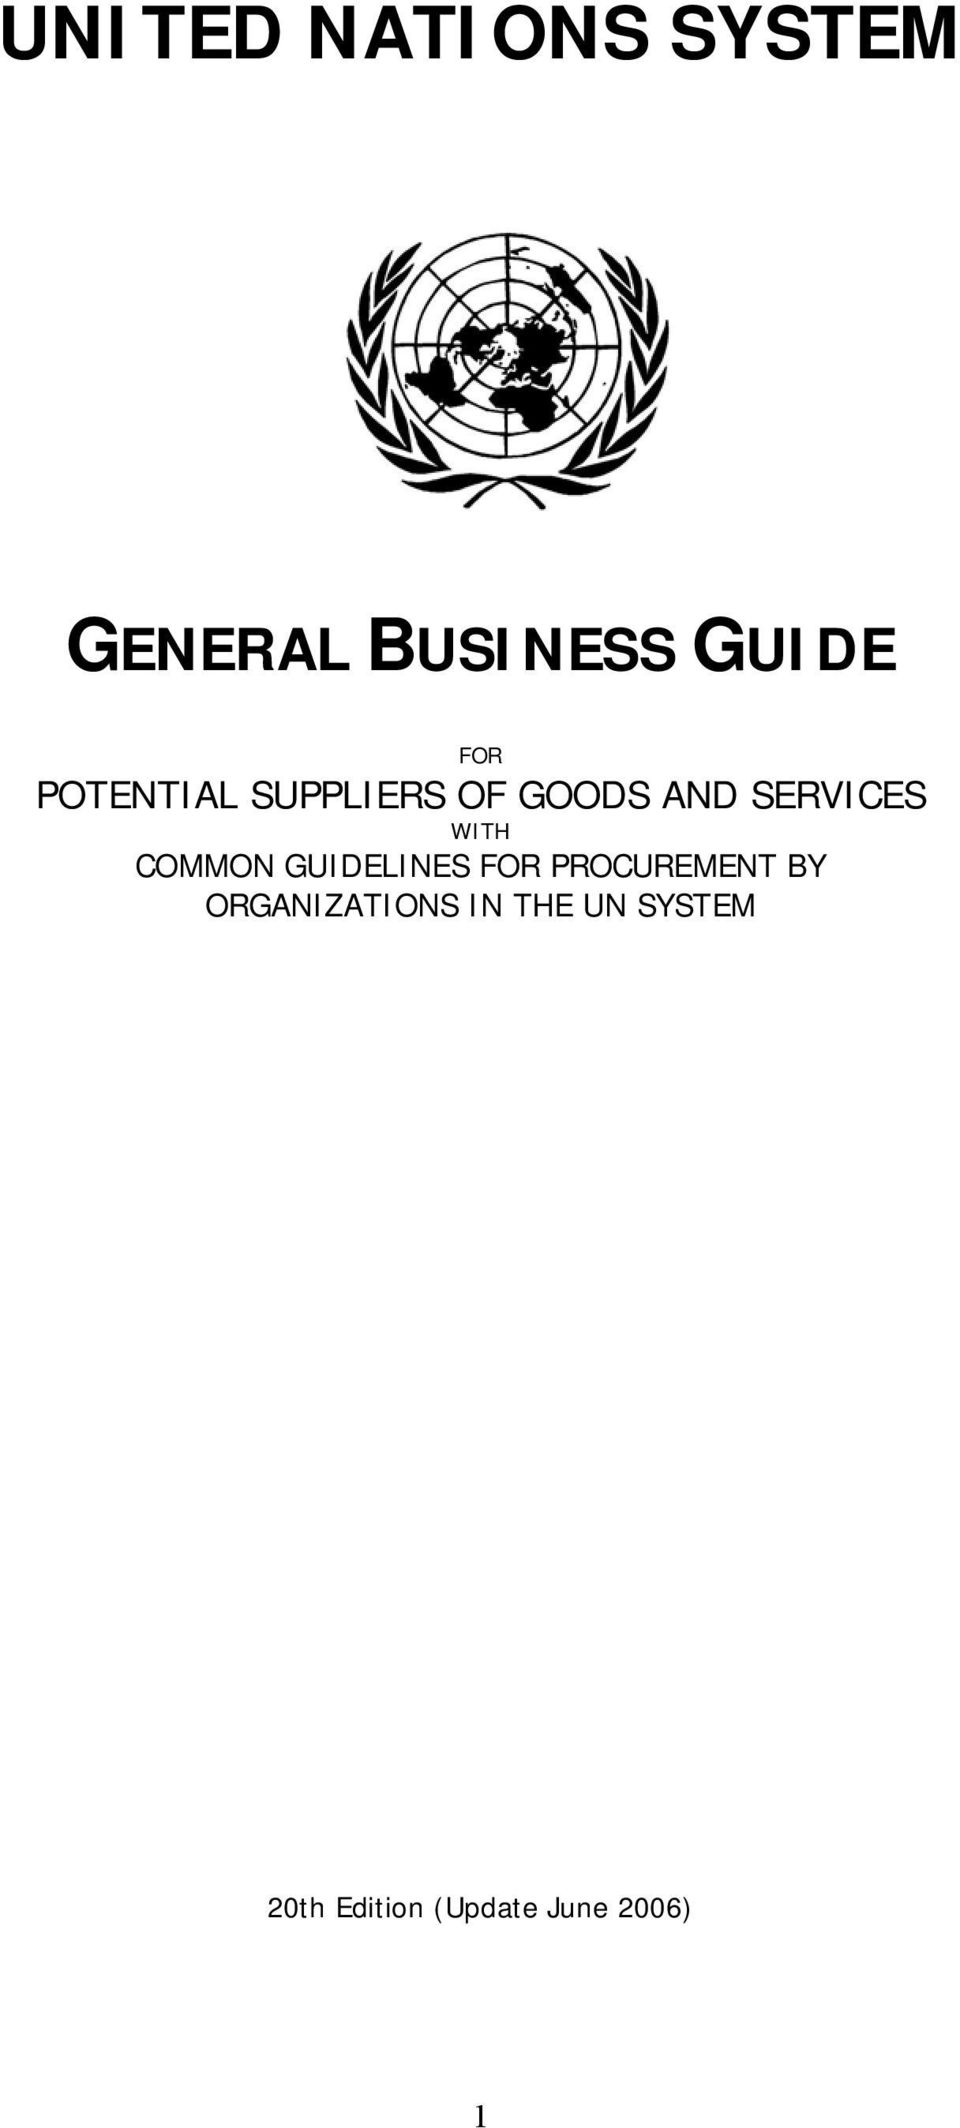 COMMON GUIDELINES FOR PROCUREMENT BY